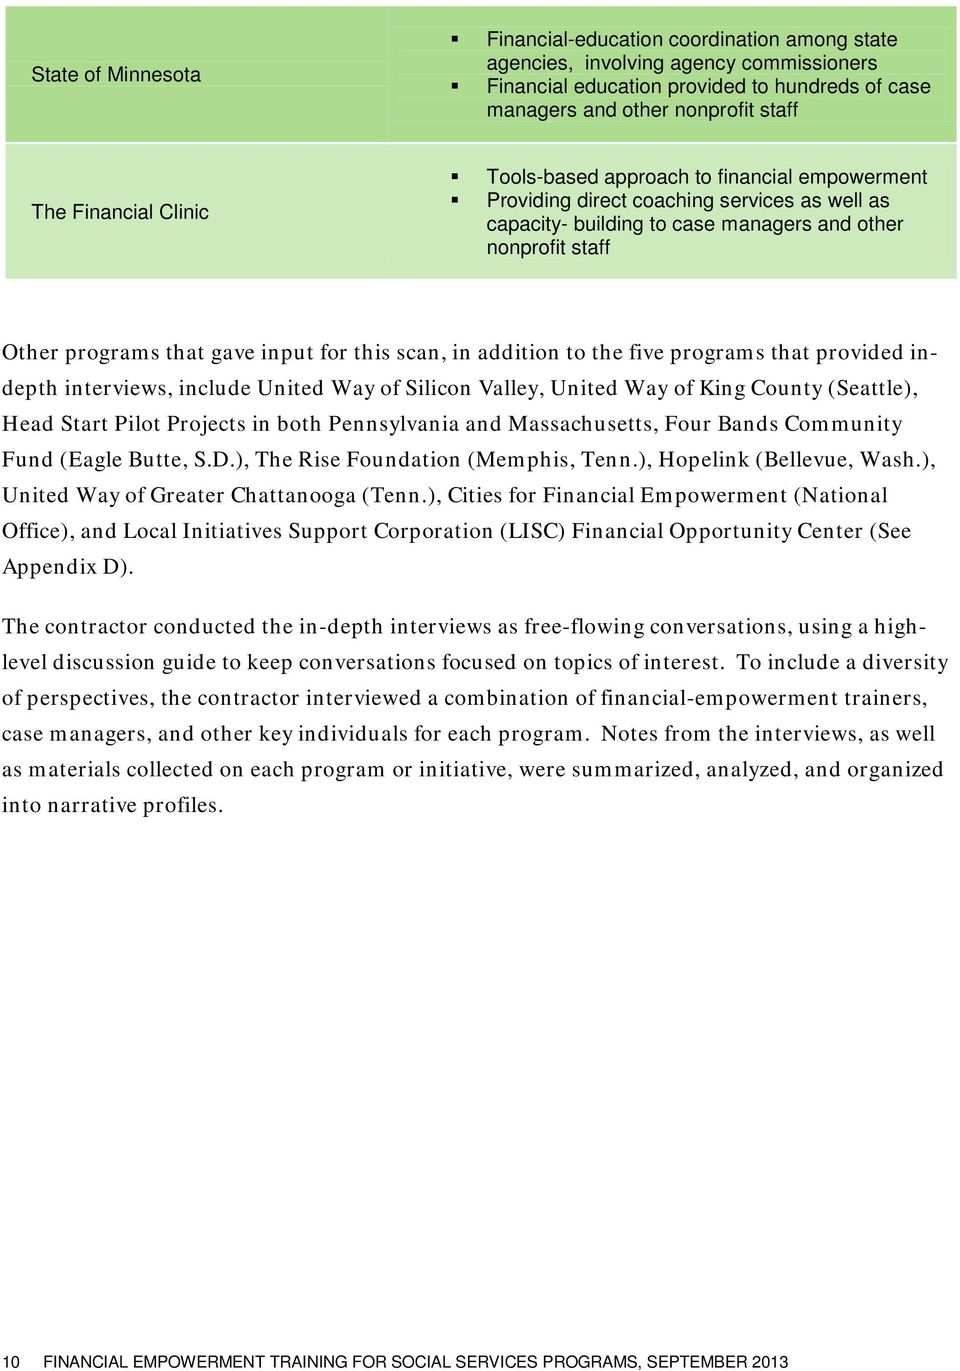 input for this scan, in addition to the five programs that provided indepth interviews, include United Way of Silicon Valley, United Way of King County (Seattle), Head Start Pilot Projects in both